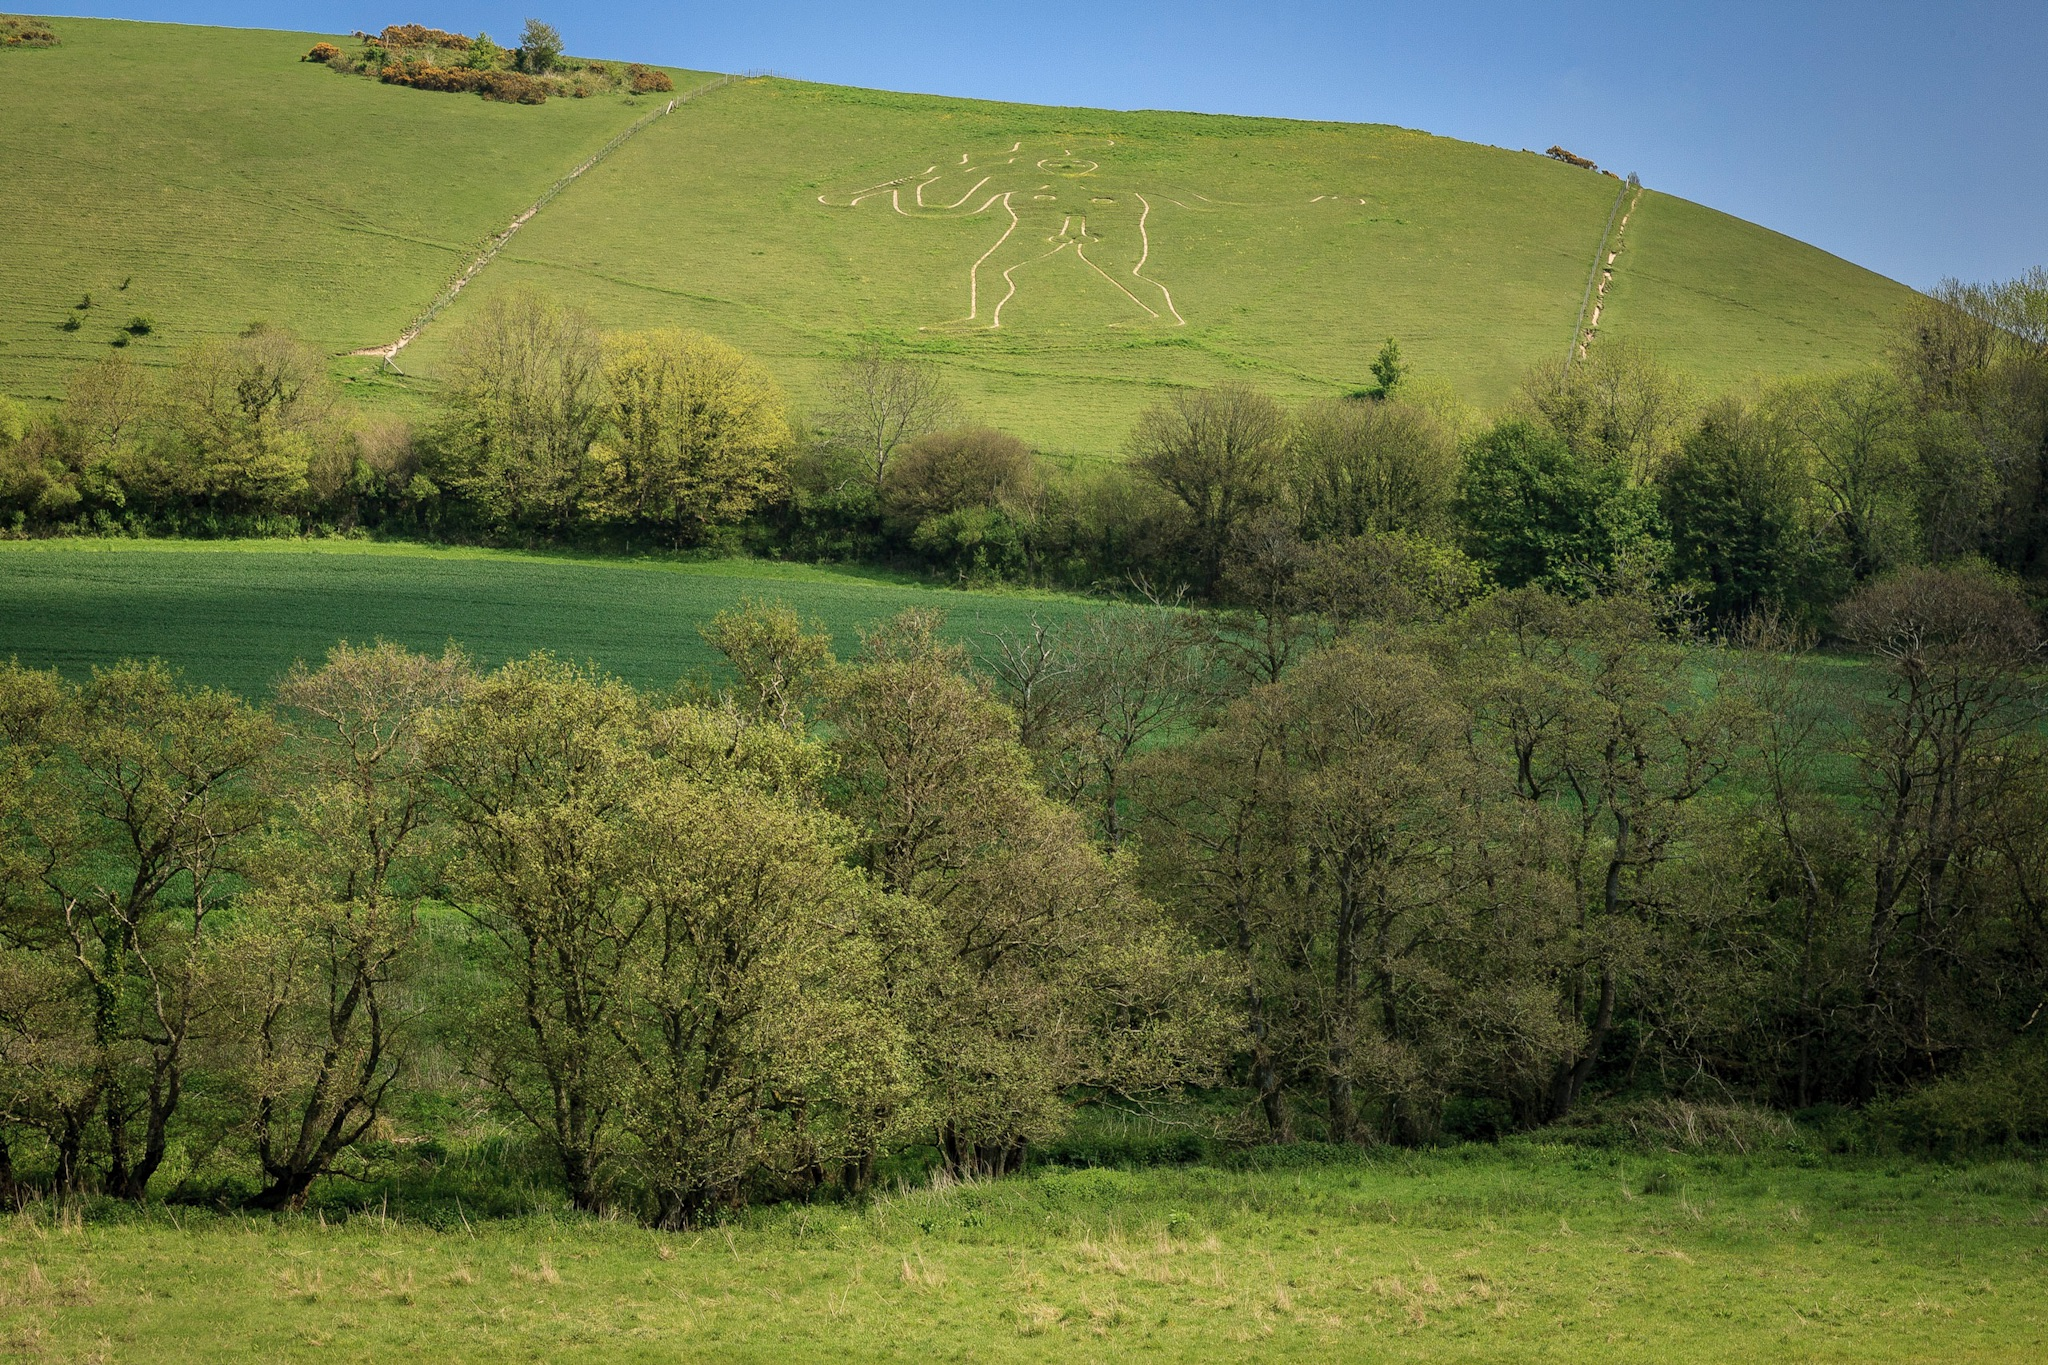 Picture of the Cerne Giant by Rick McEvoy Dorset Photographer